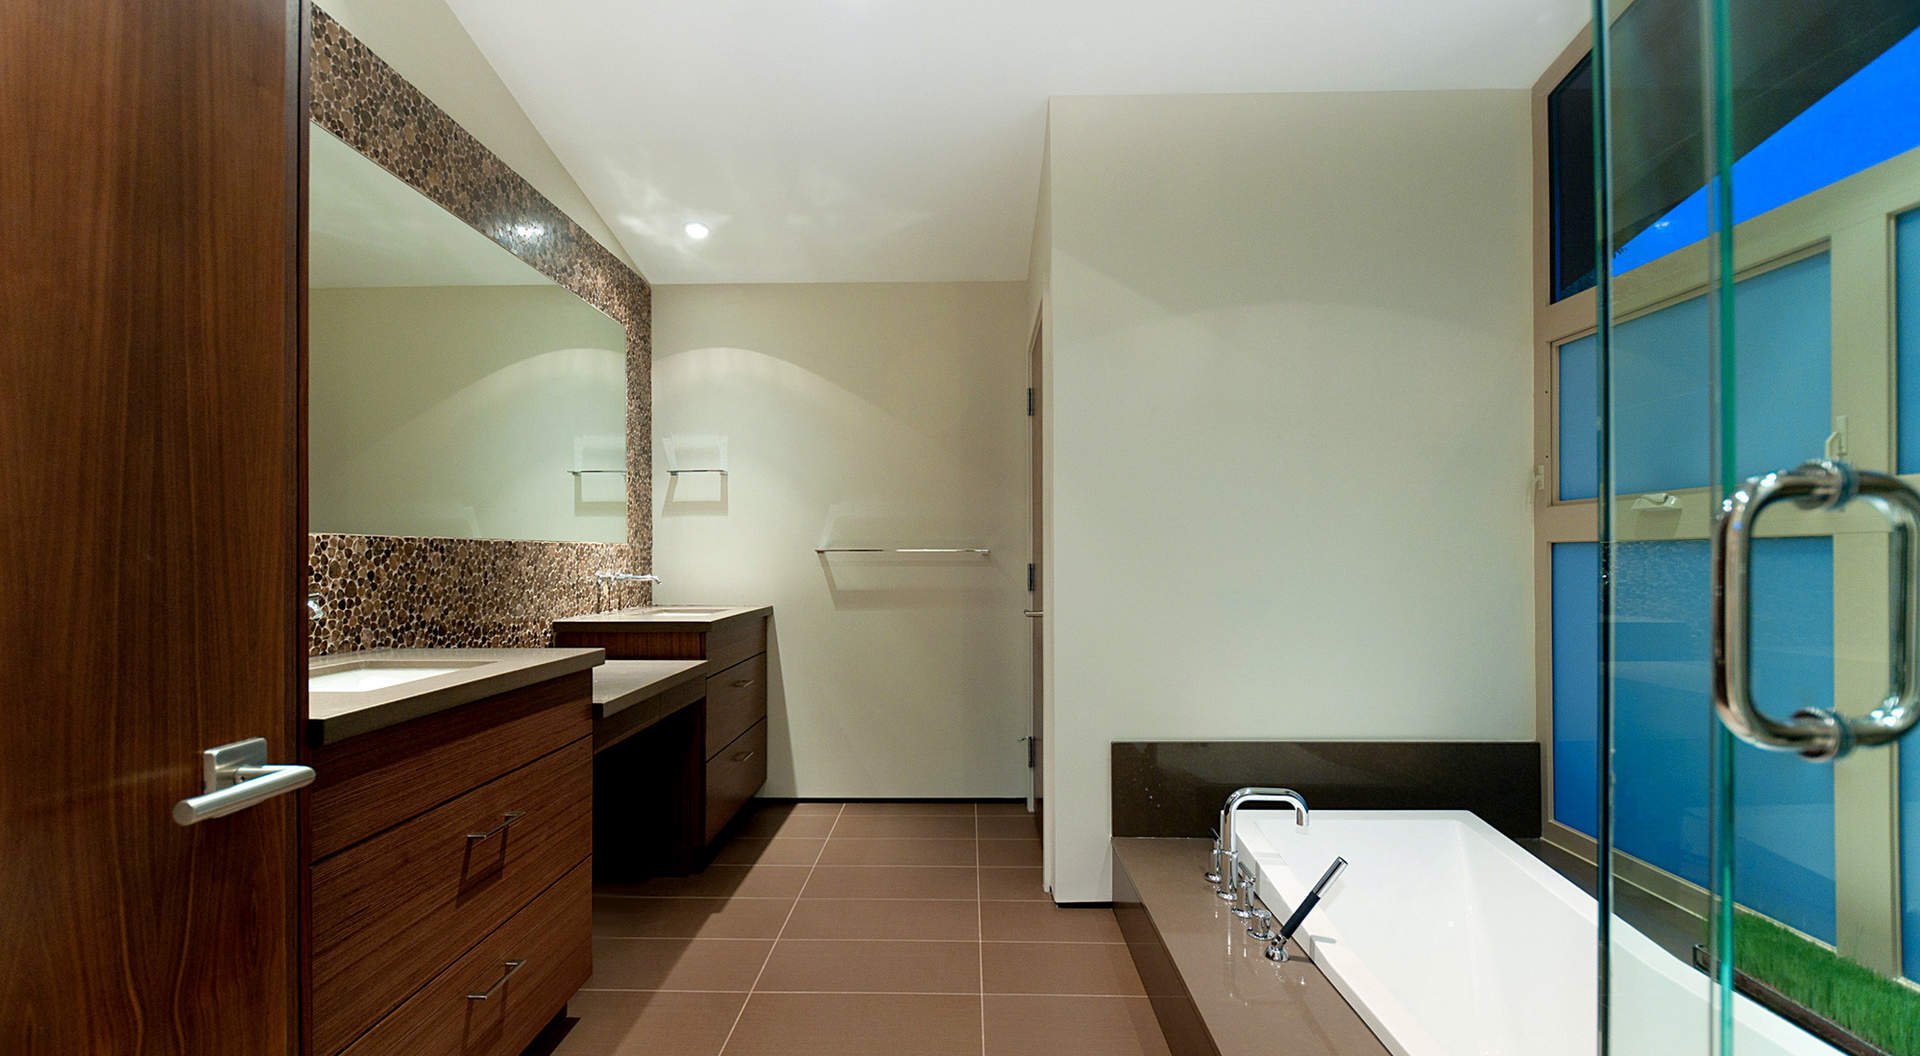 Spa-Like Master Ensuite with walk-in Shower and Large Soaker Tub